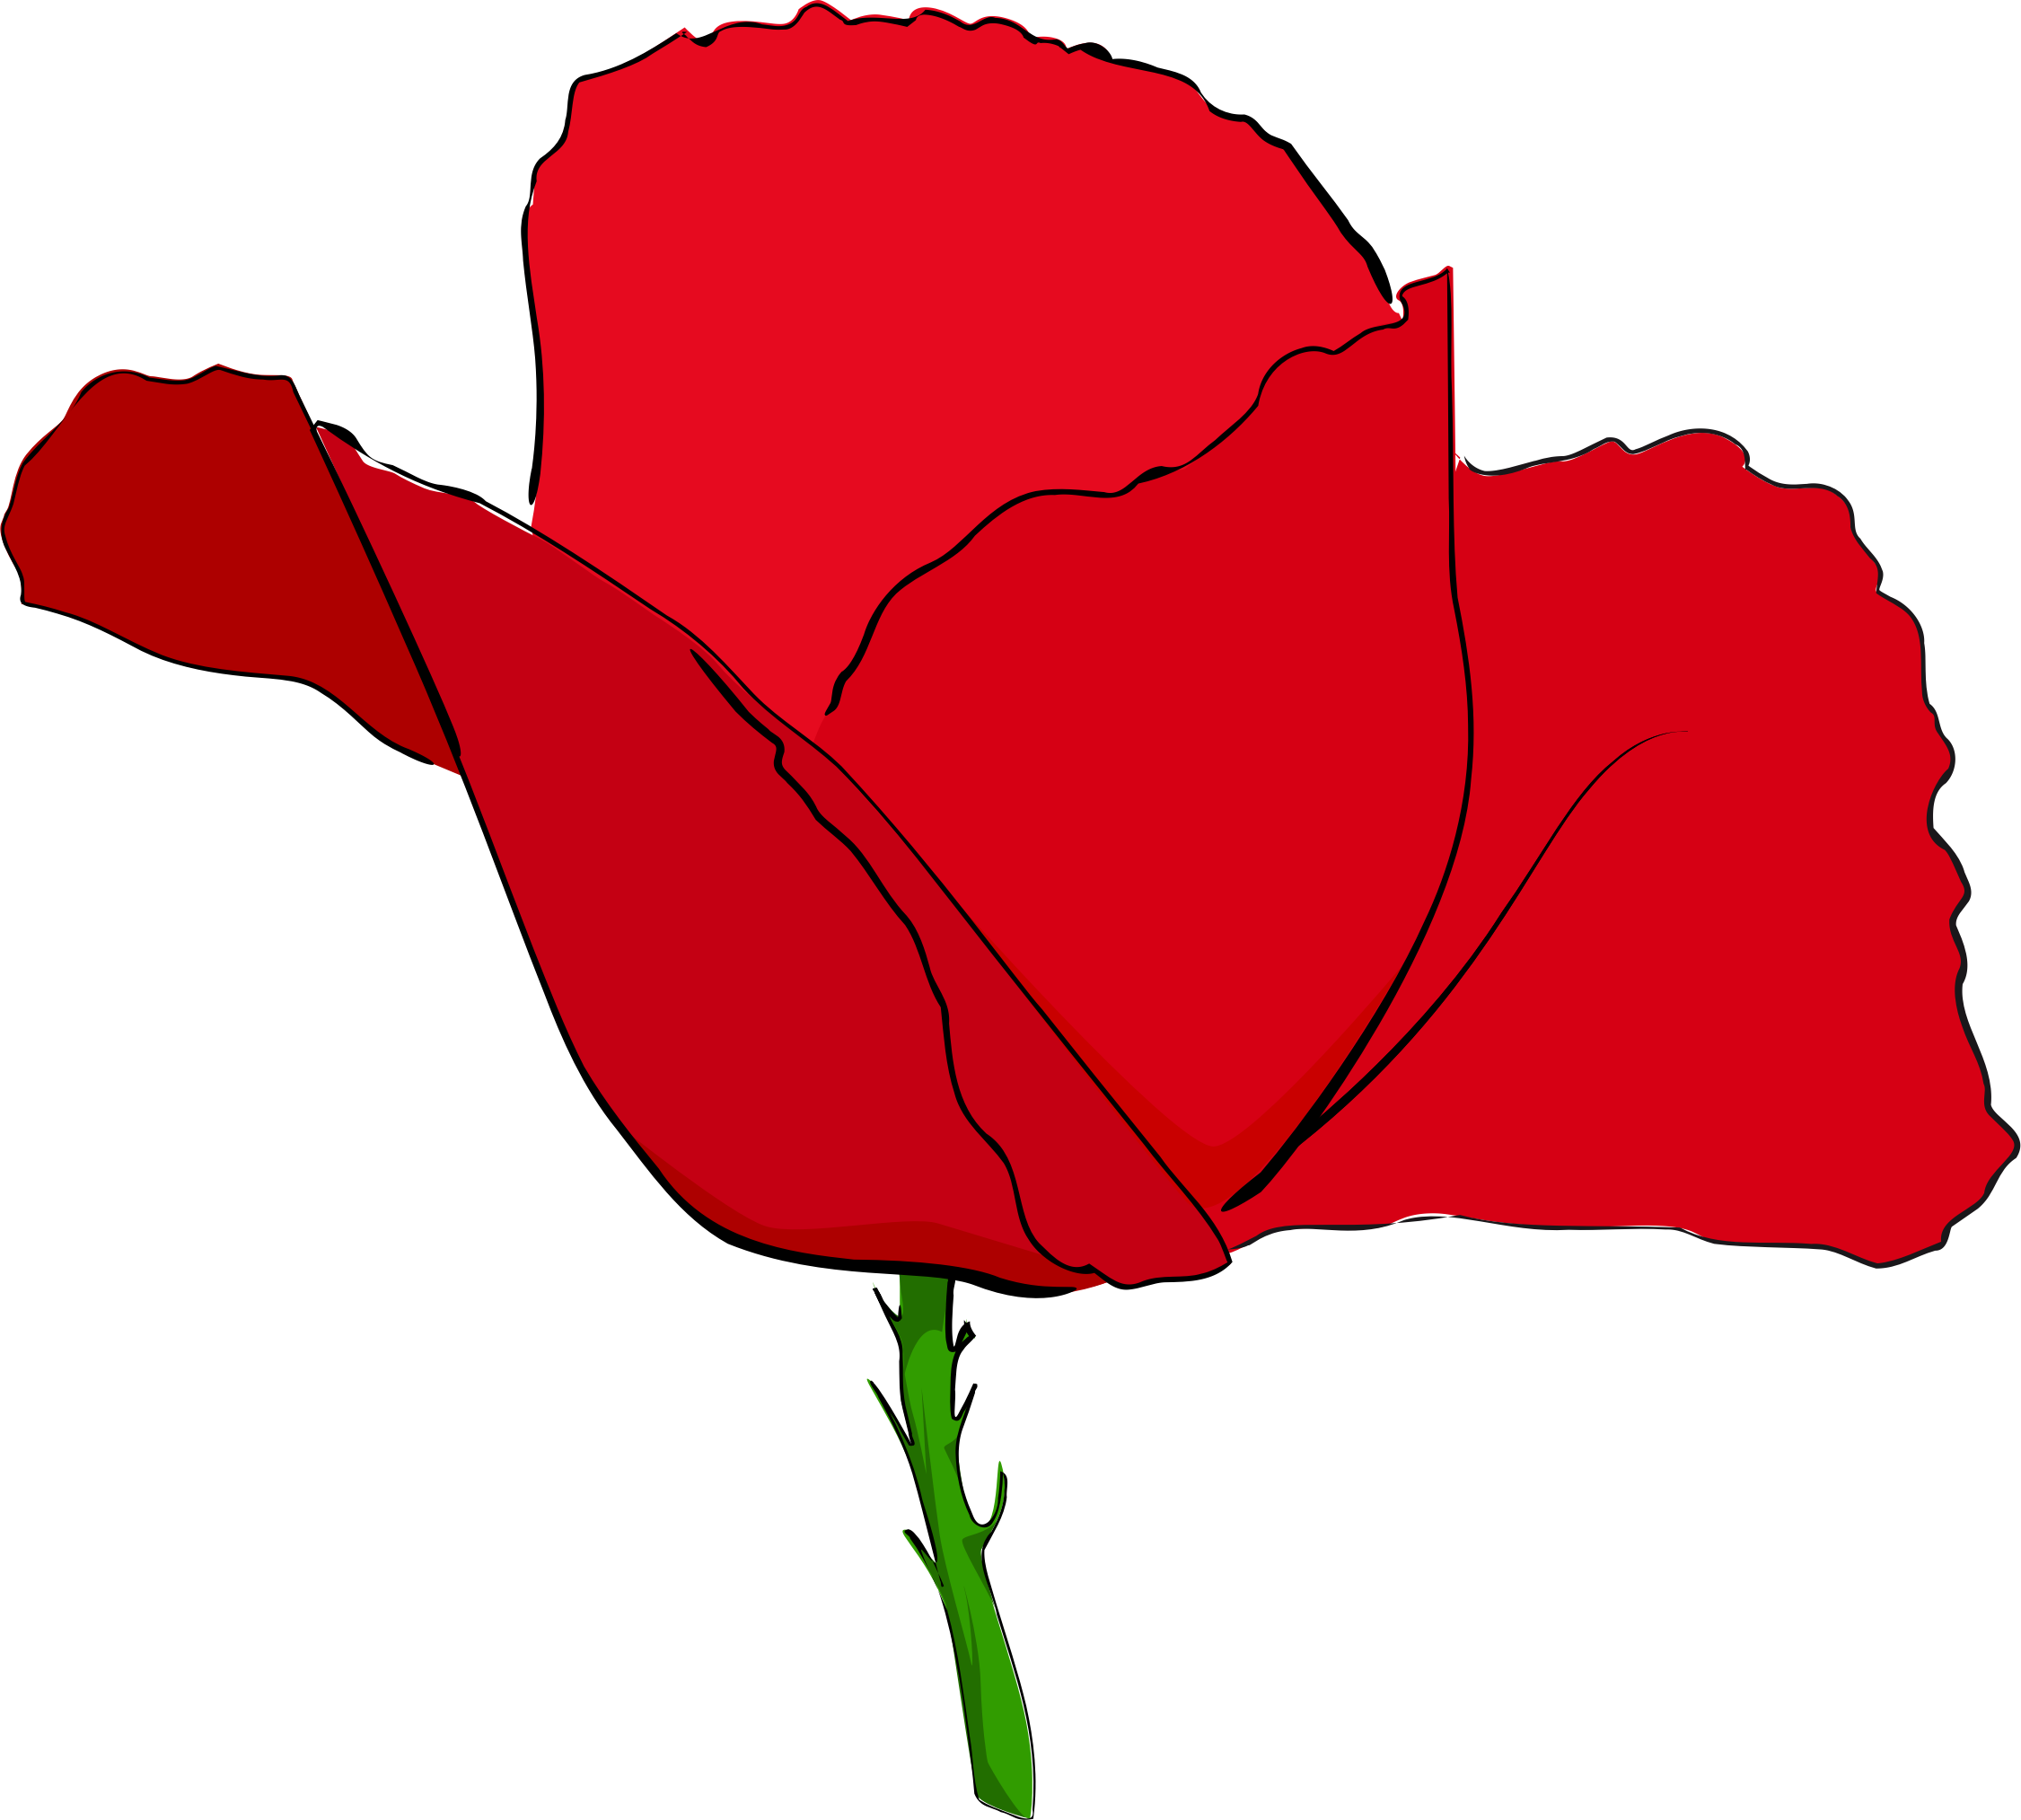 Coquelicot rouge - Red poppy by enolynn